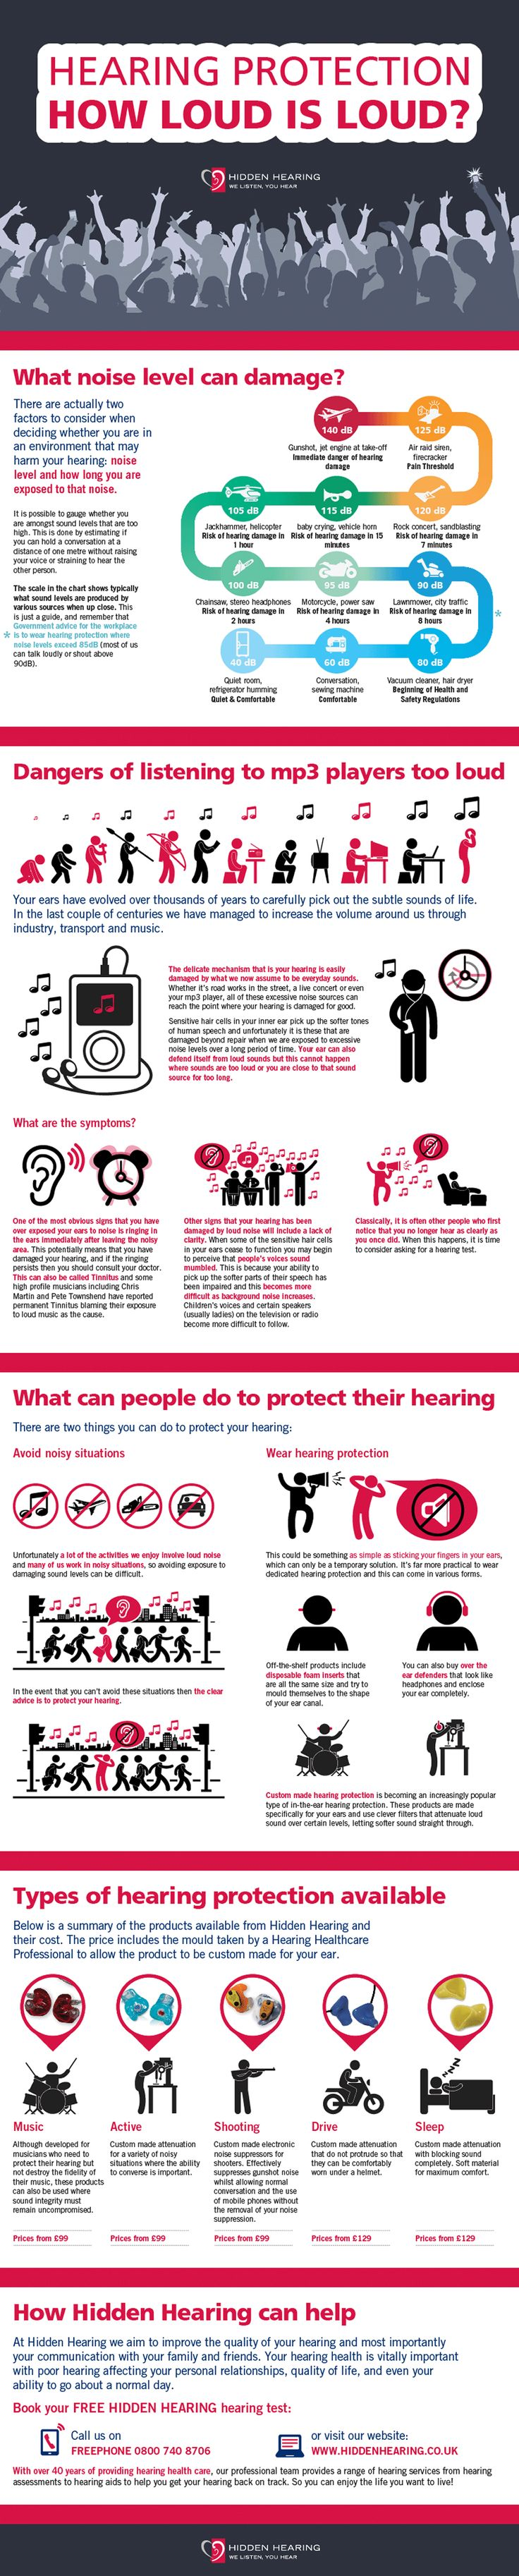 Hearing Protection - How loud is loud?